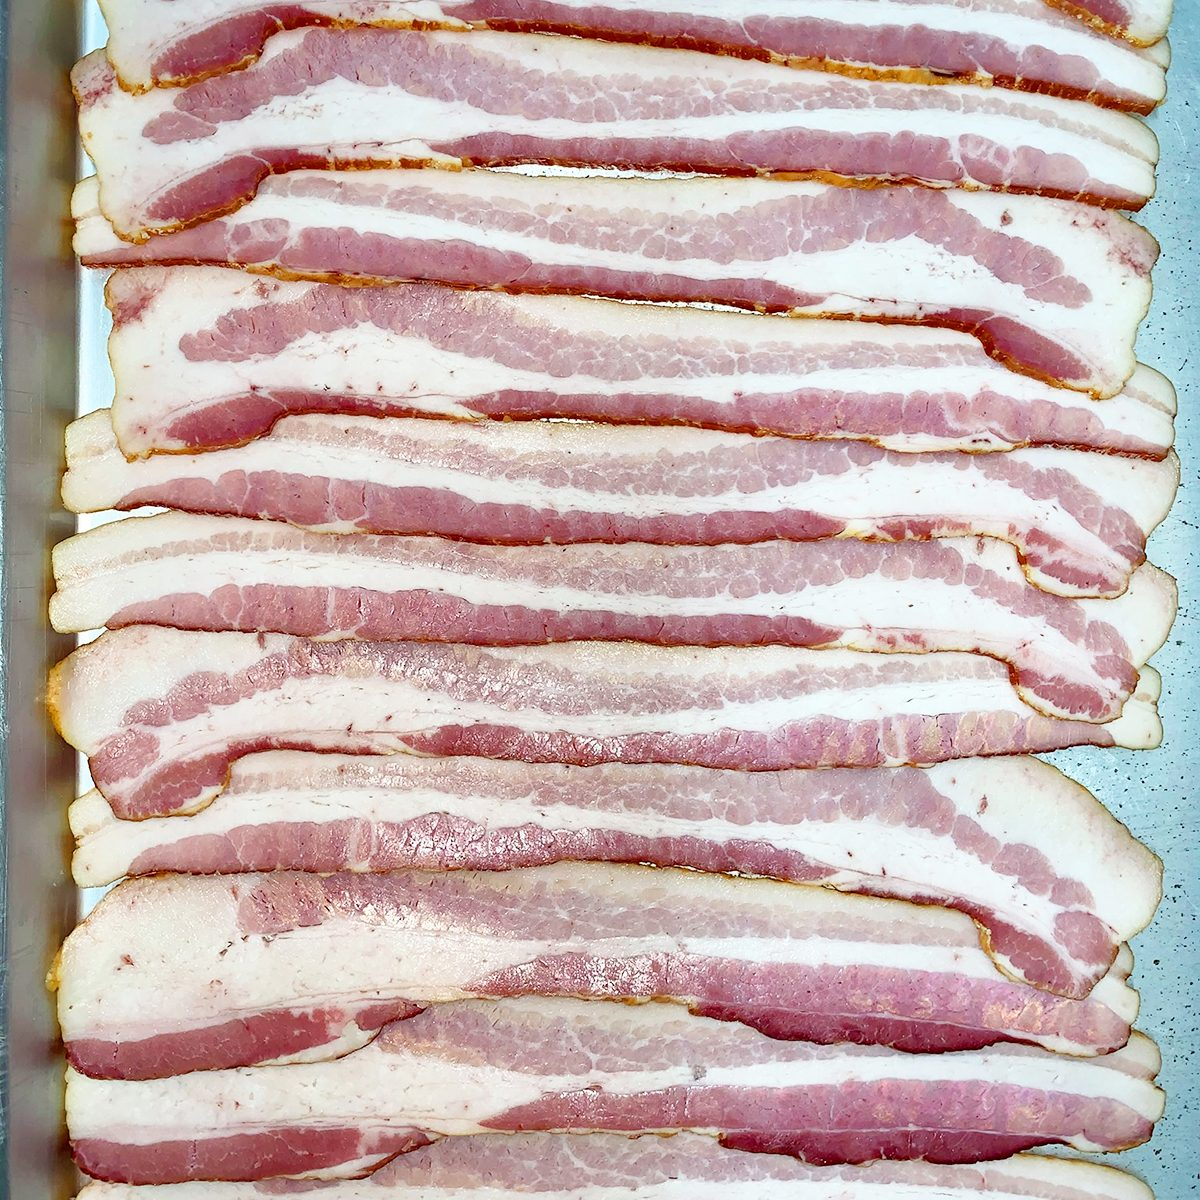 Best Bacon of New Jersey